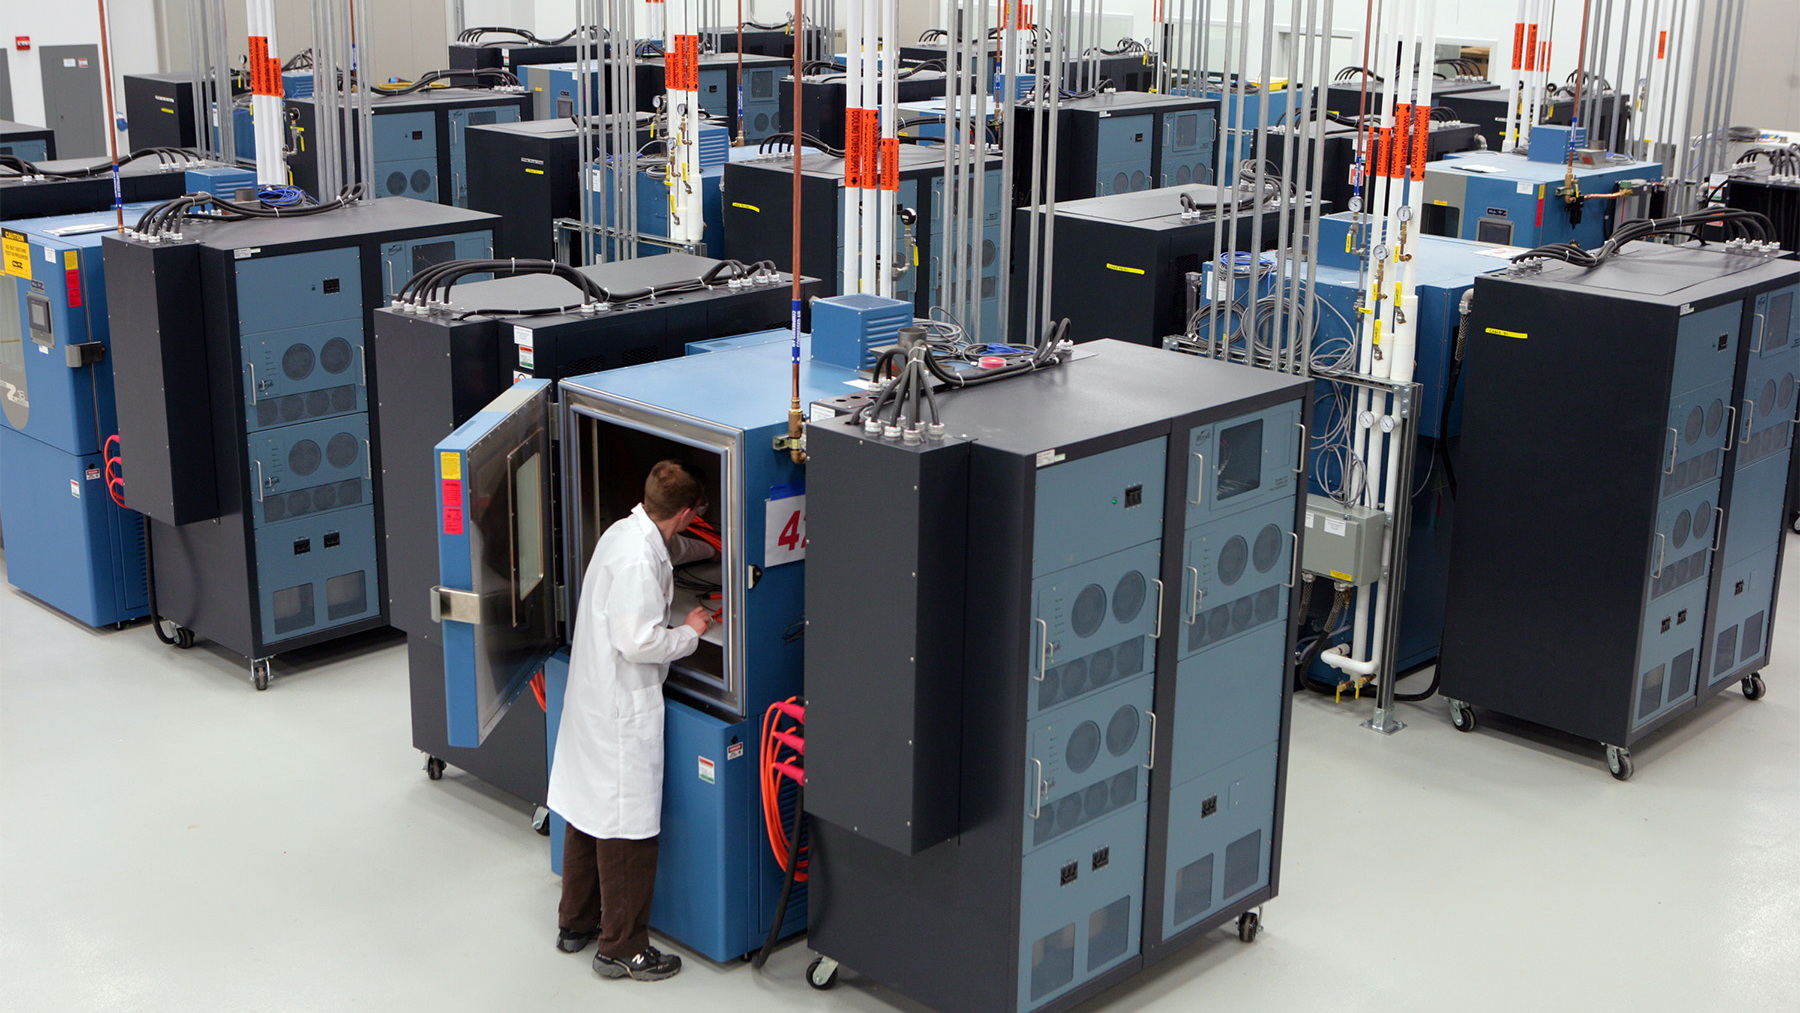 gm global battery systems lab 005